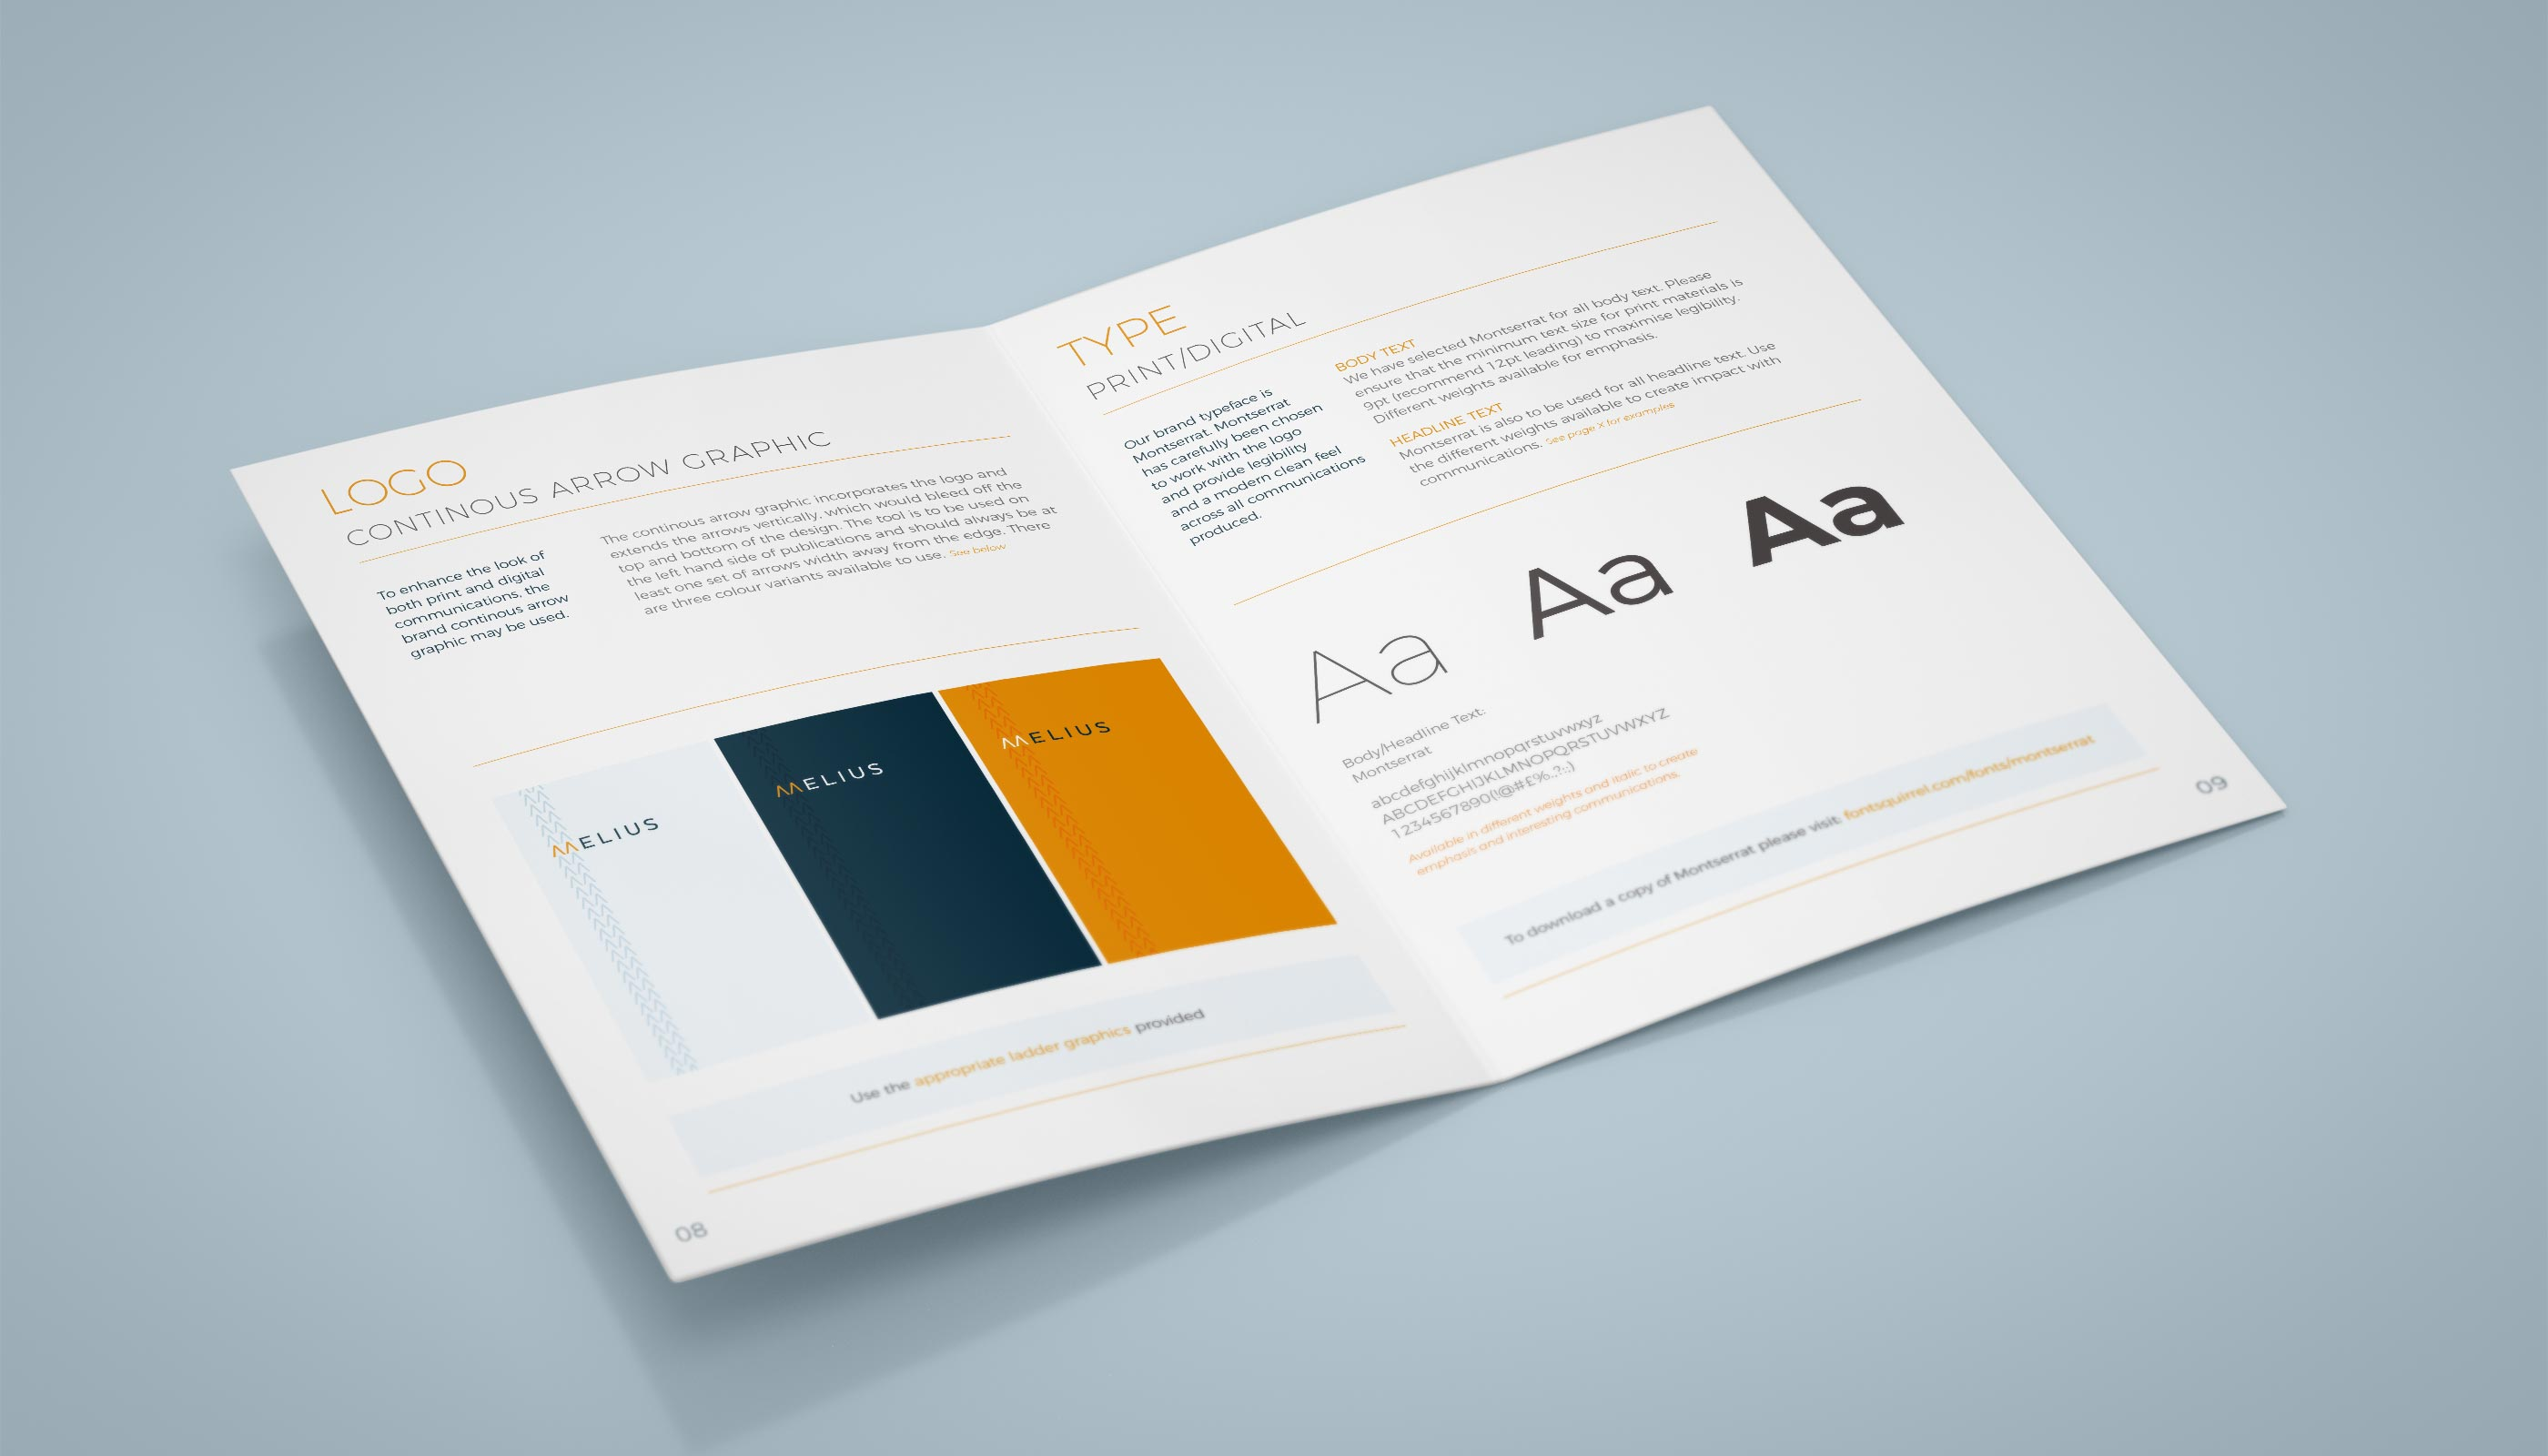 Brand guidelines for Melius in Ipswich, Suffolk.